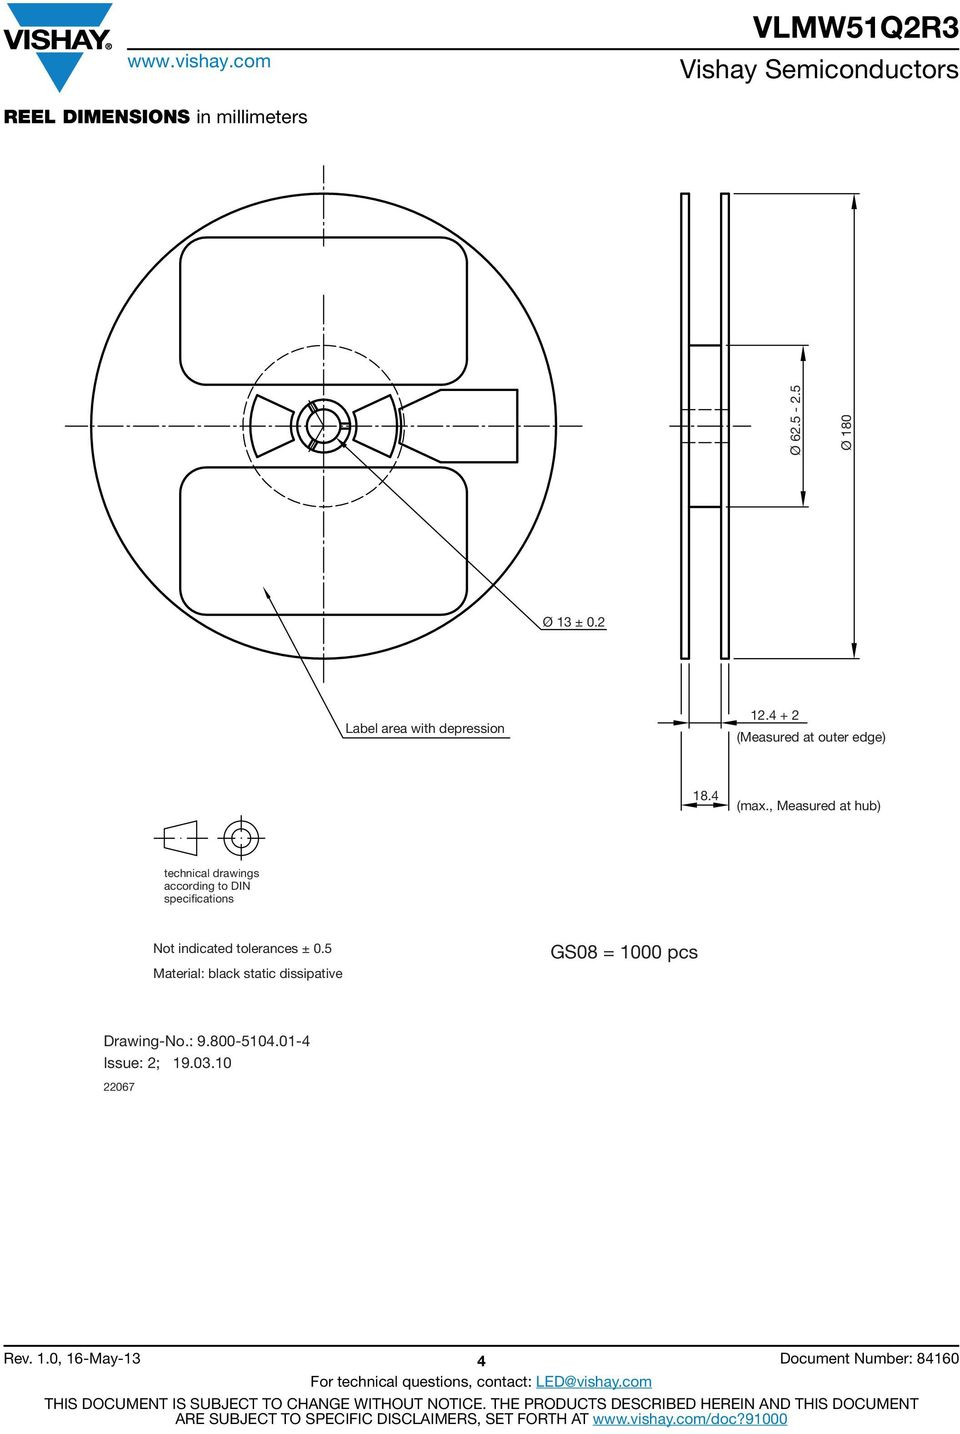 , Measured at hub) technical drawings according to DIN specifications Not indicated